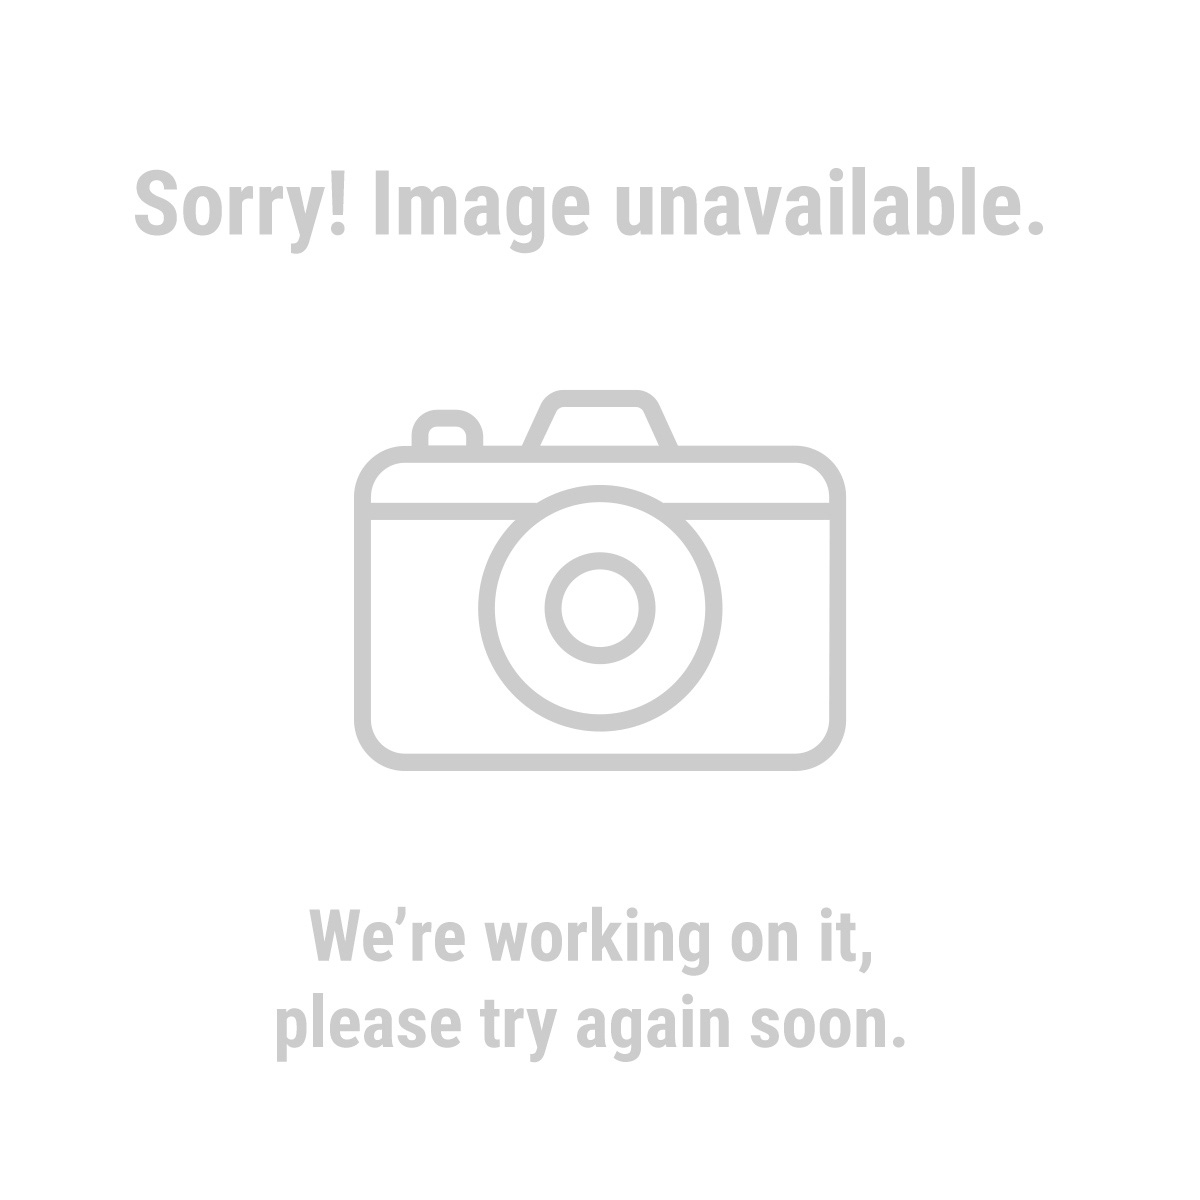 HARDY 68511 Pack of 50 Black Nitrile Gloves, Size Large